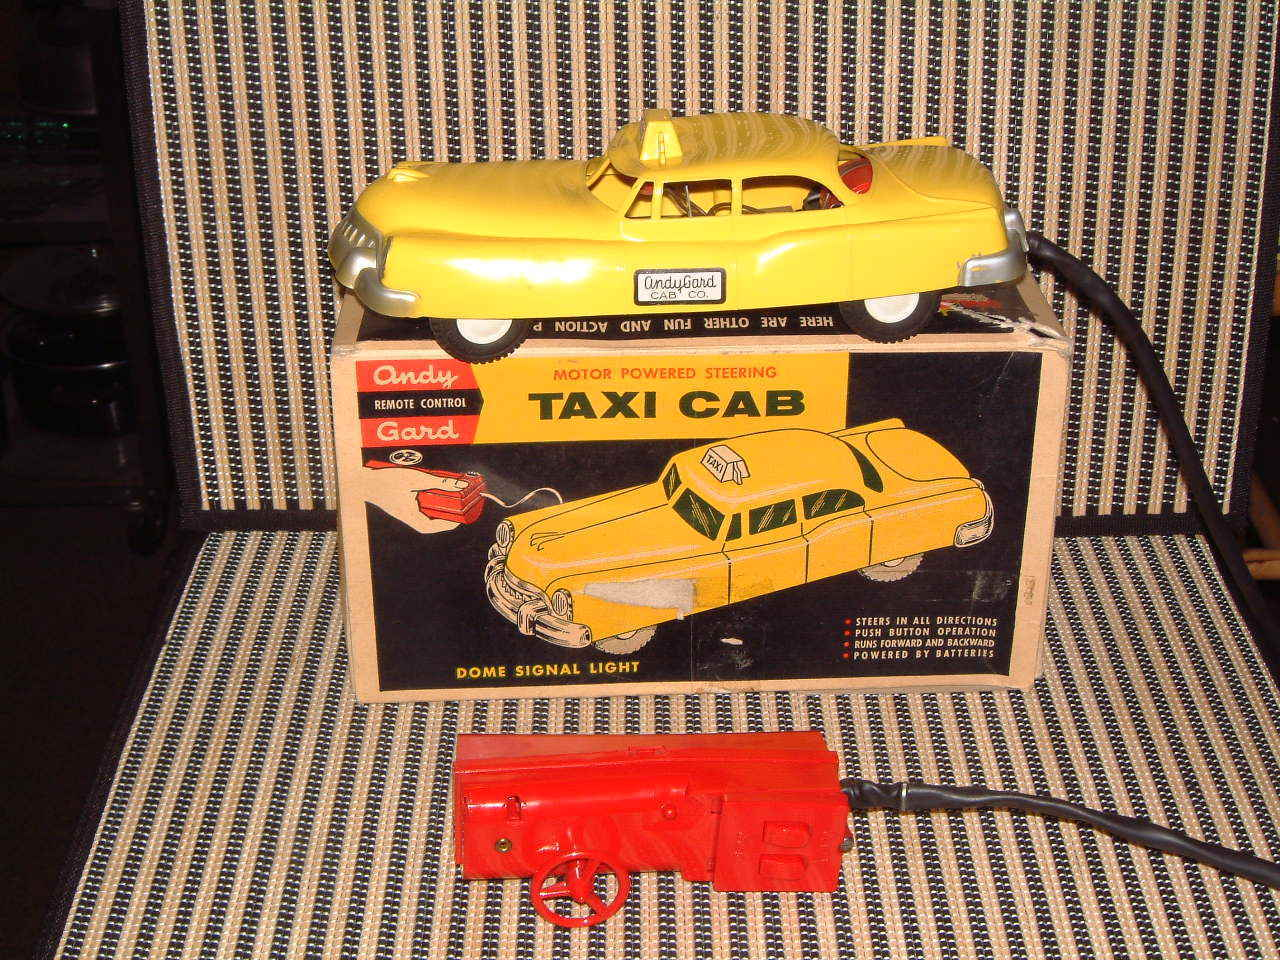 ANDY GARD MOTOR POWErosso STEERING  TAXI CAB  W ORIGINAL BOX, WORKING PERFECTLY